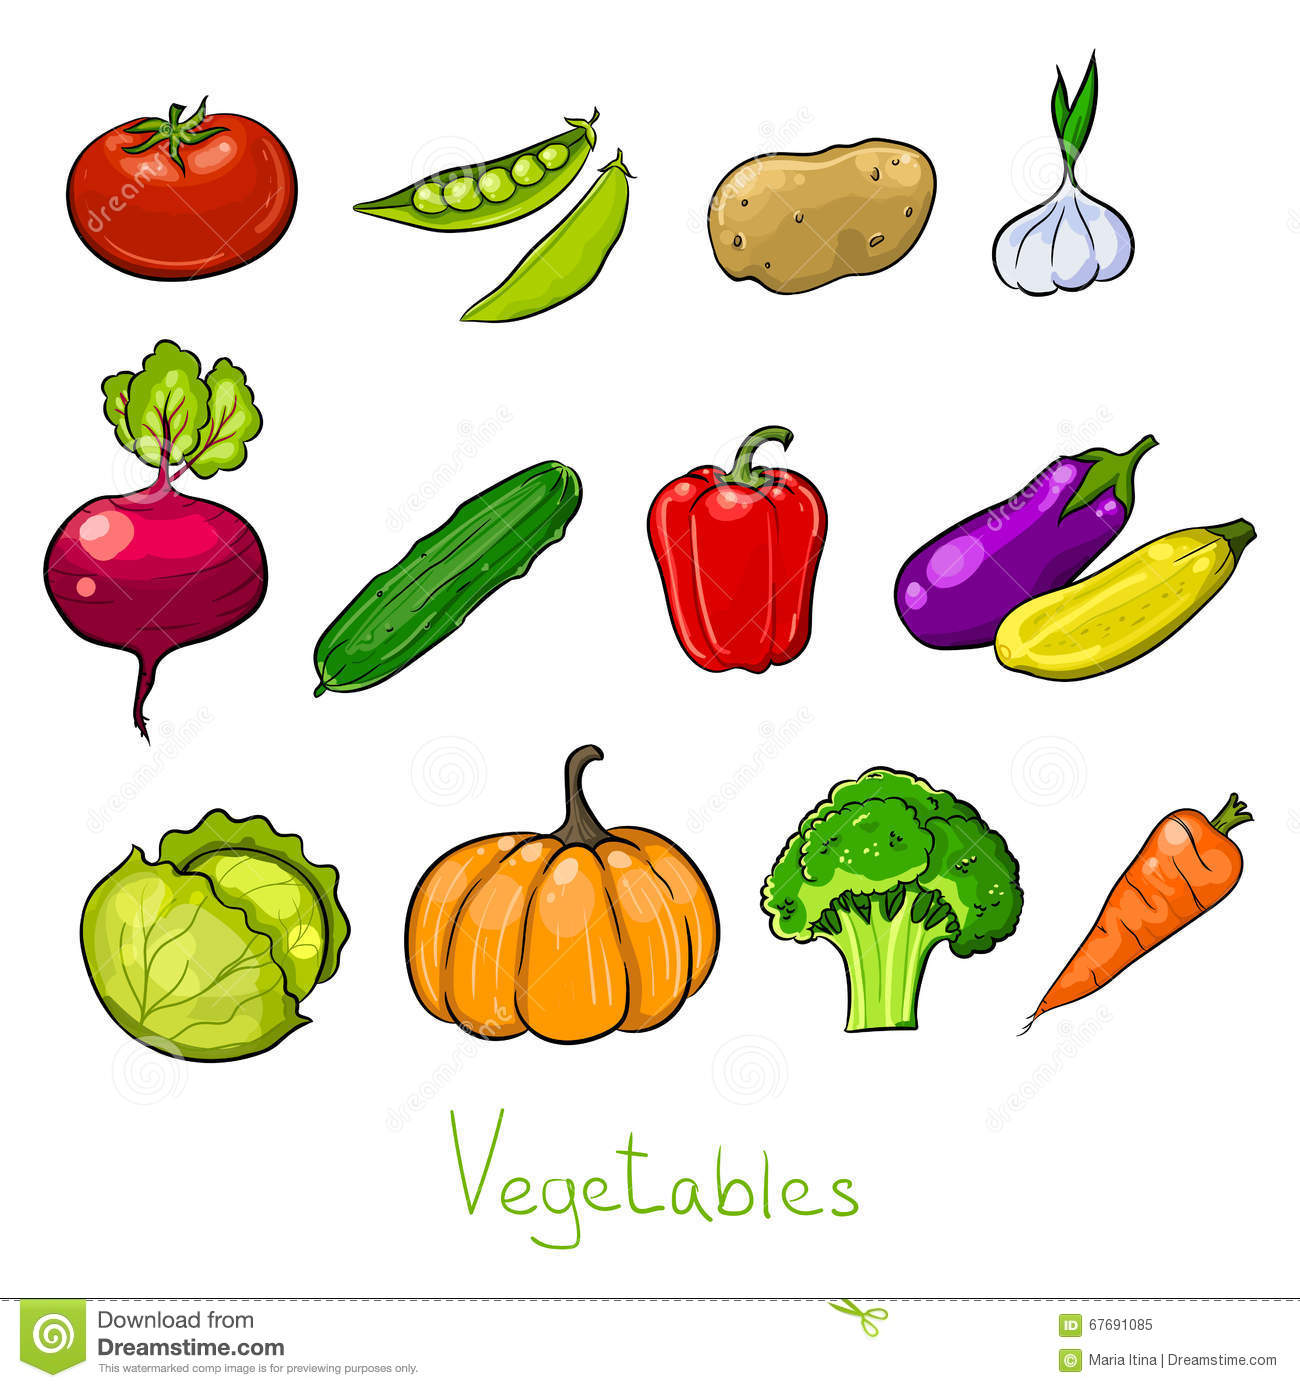 Color vegetables sketches stock vector. Illustration of ...